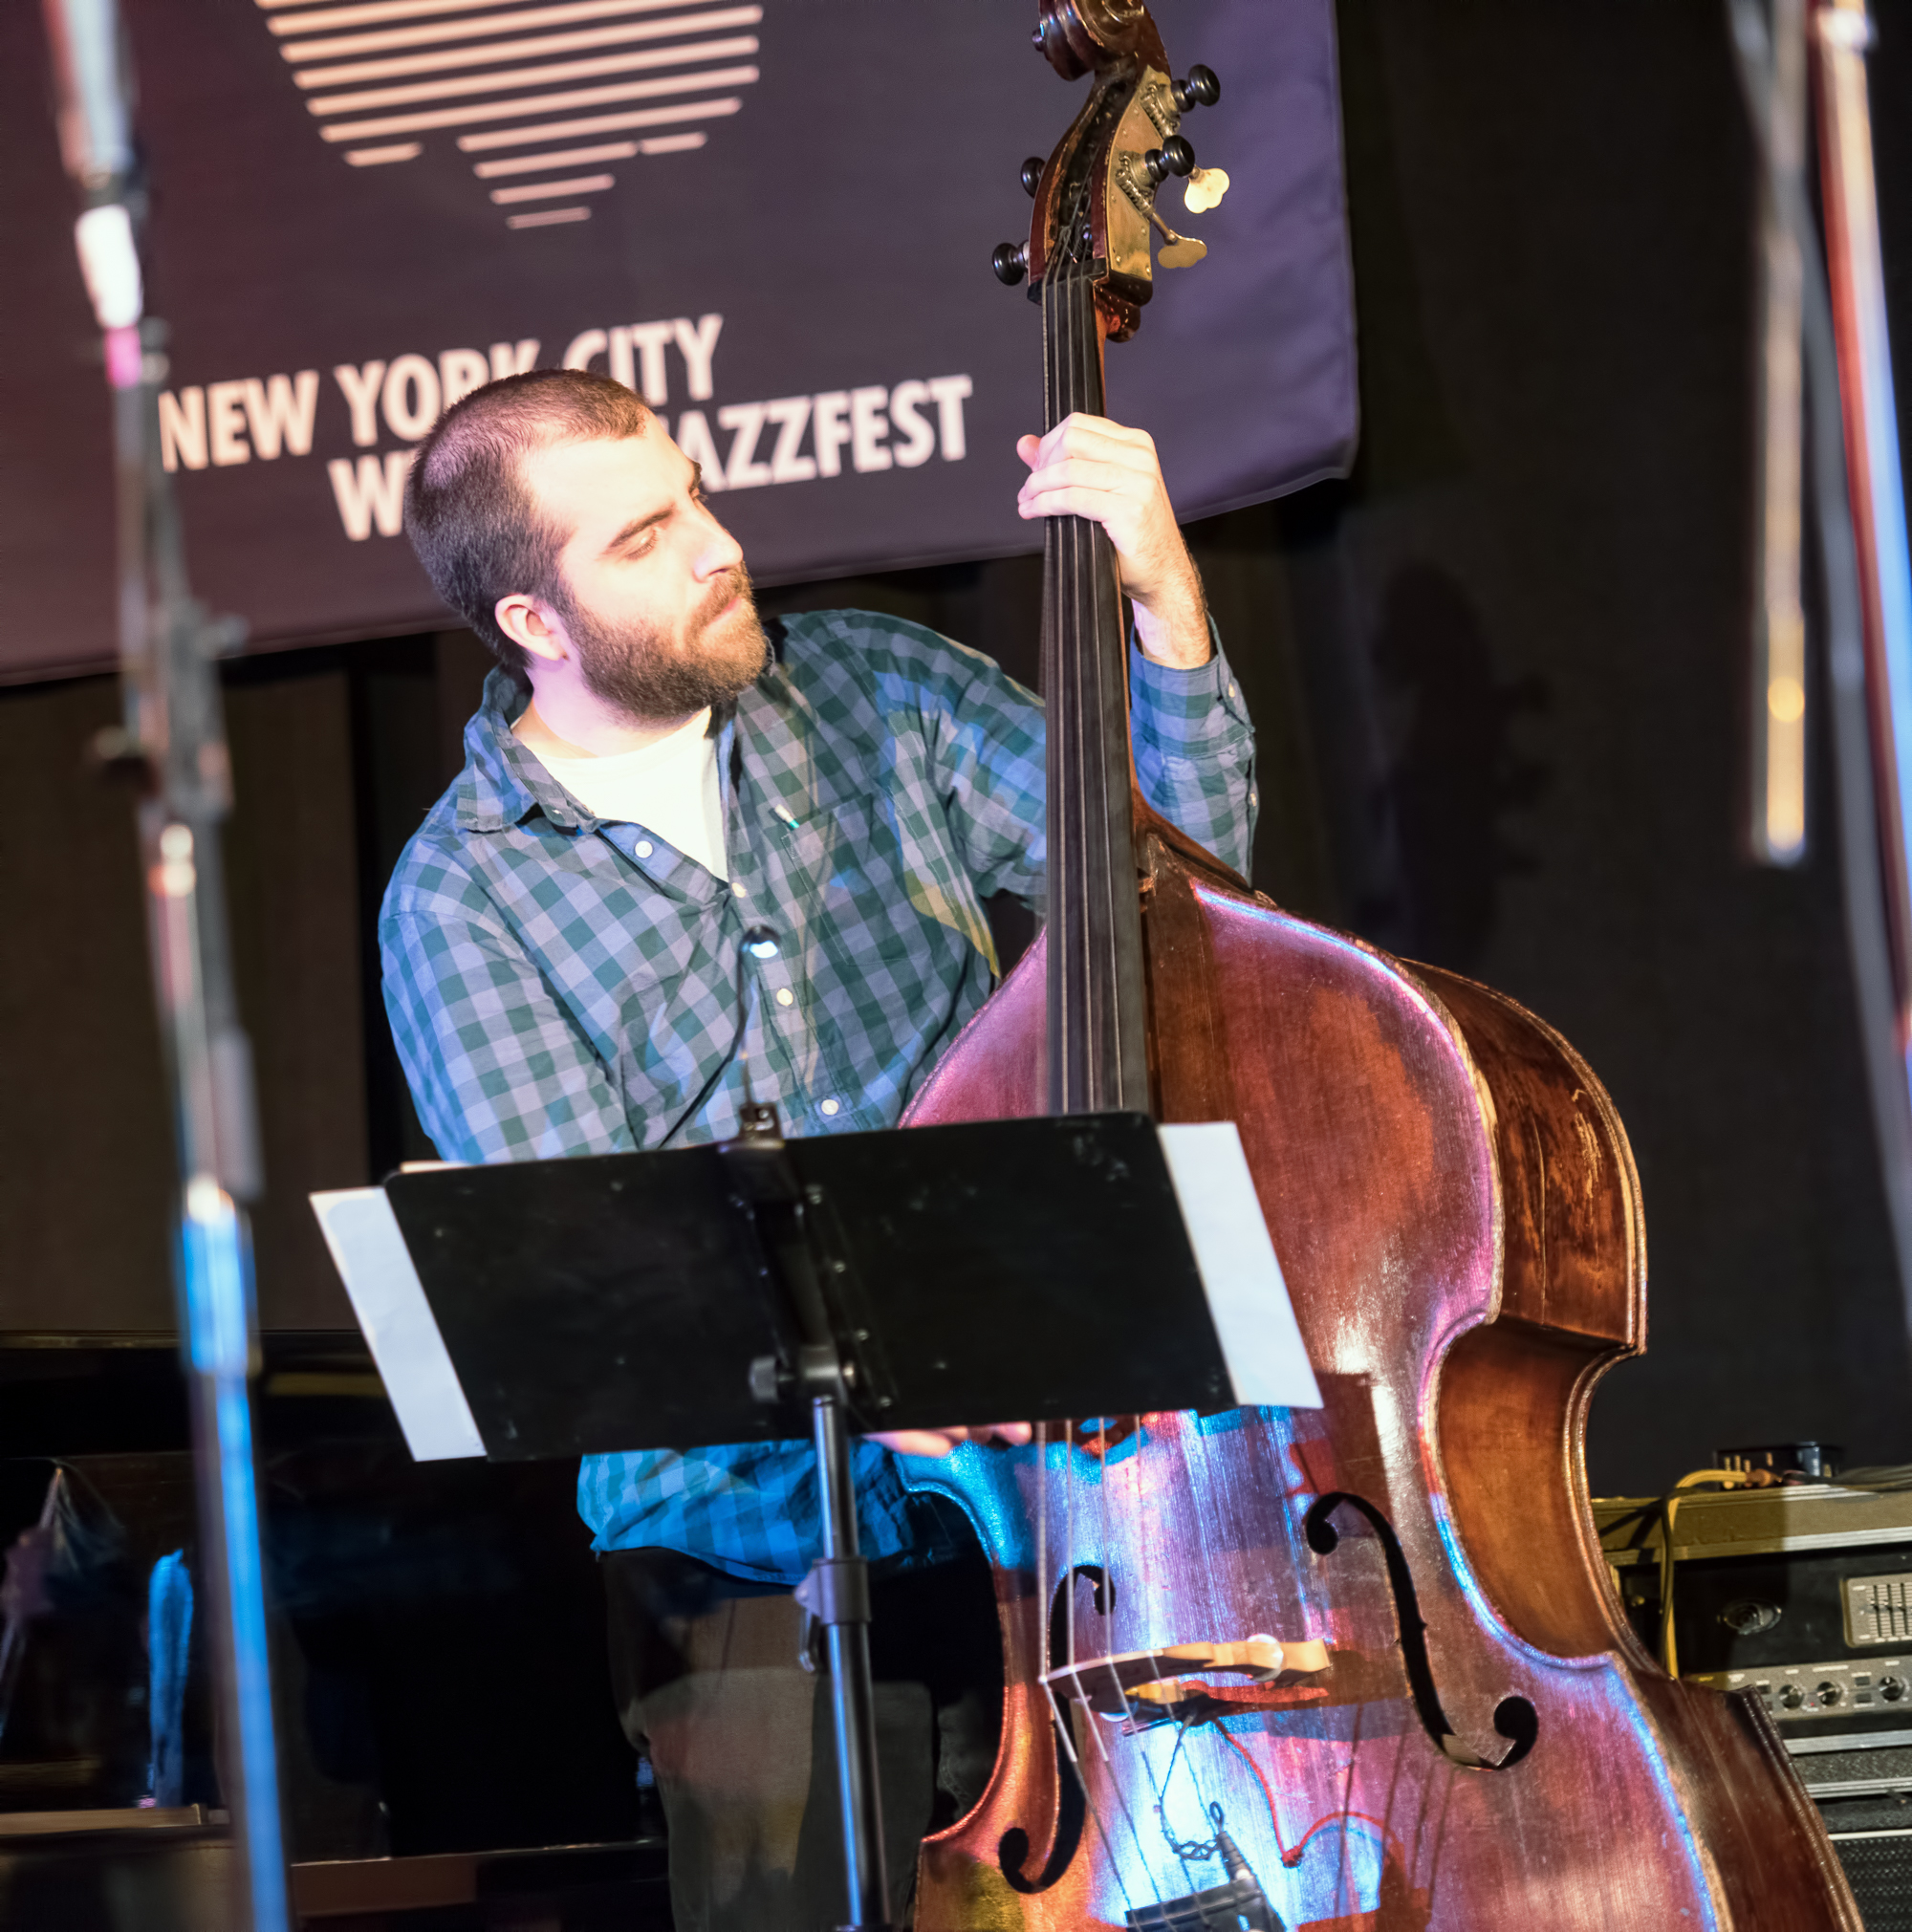 Chris Tordini with Rudresh Mahanthappa's Bird Calls (the Charlie Parker Project) at the Nyc Winter Jazzfest 2015